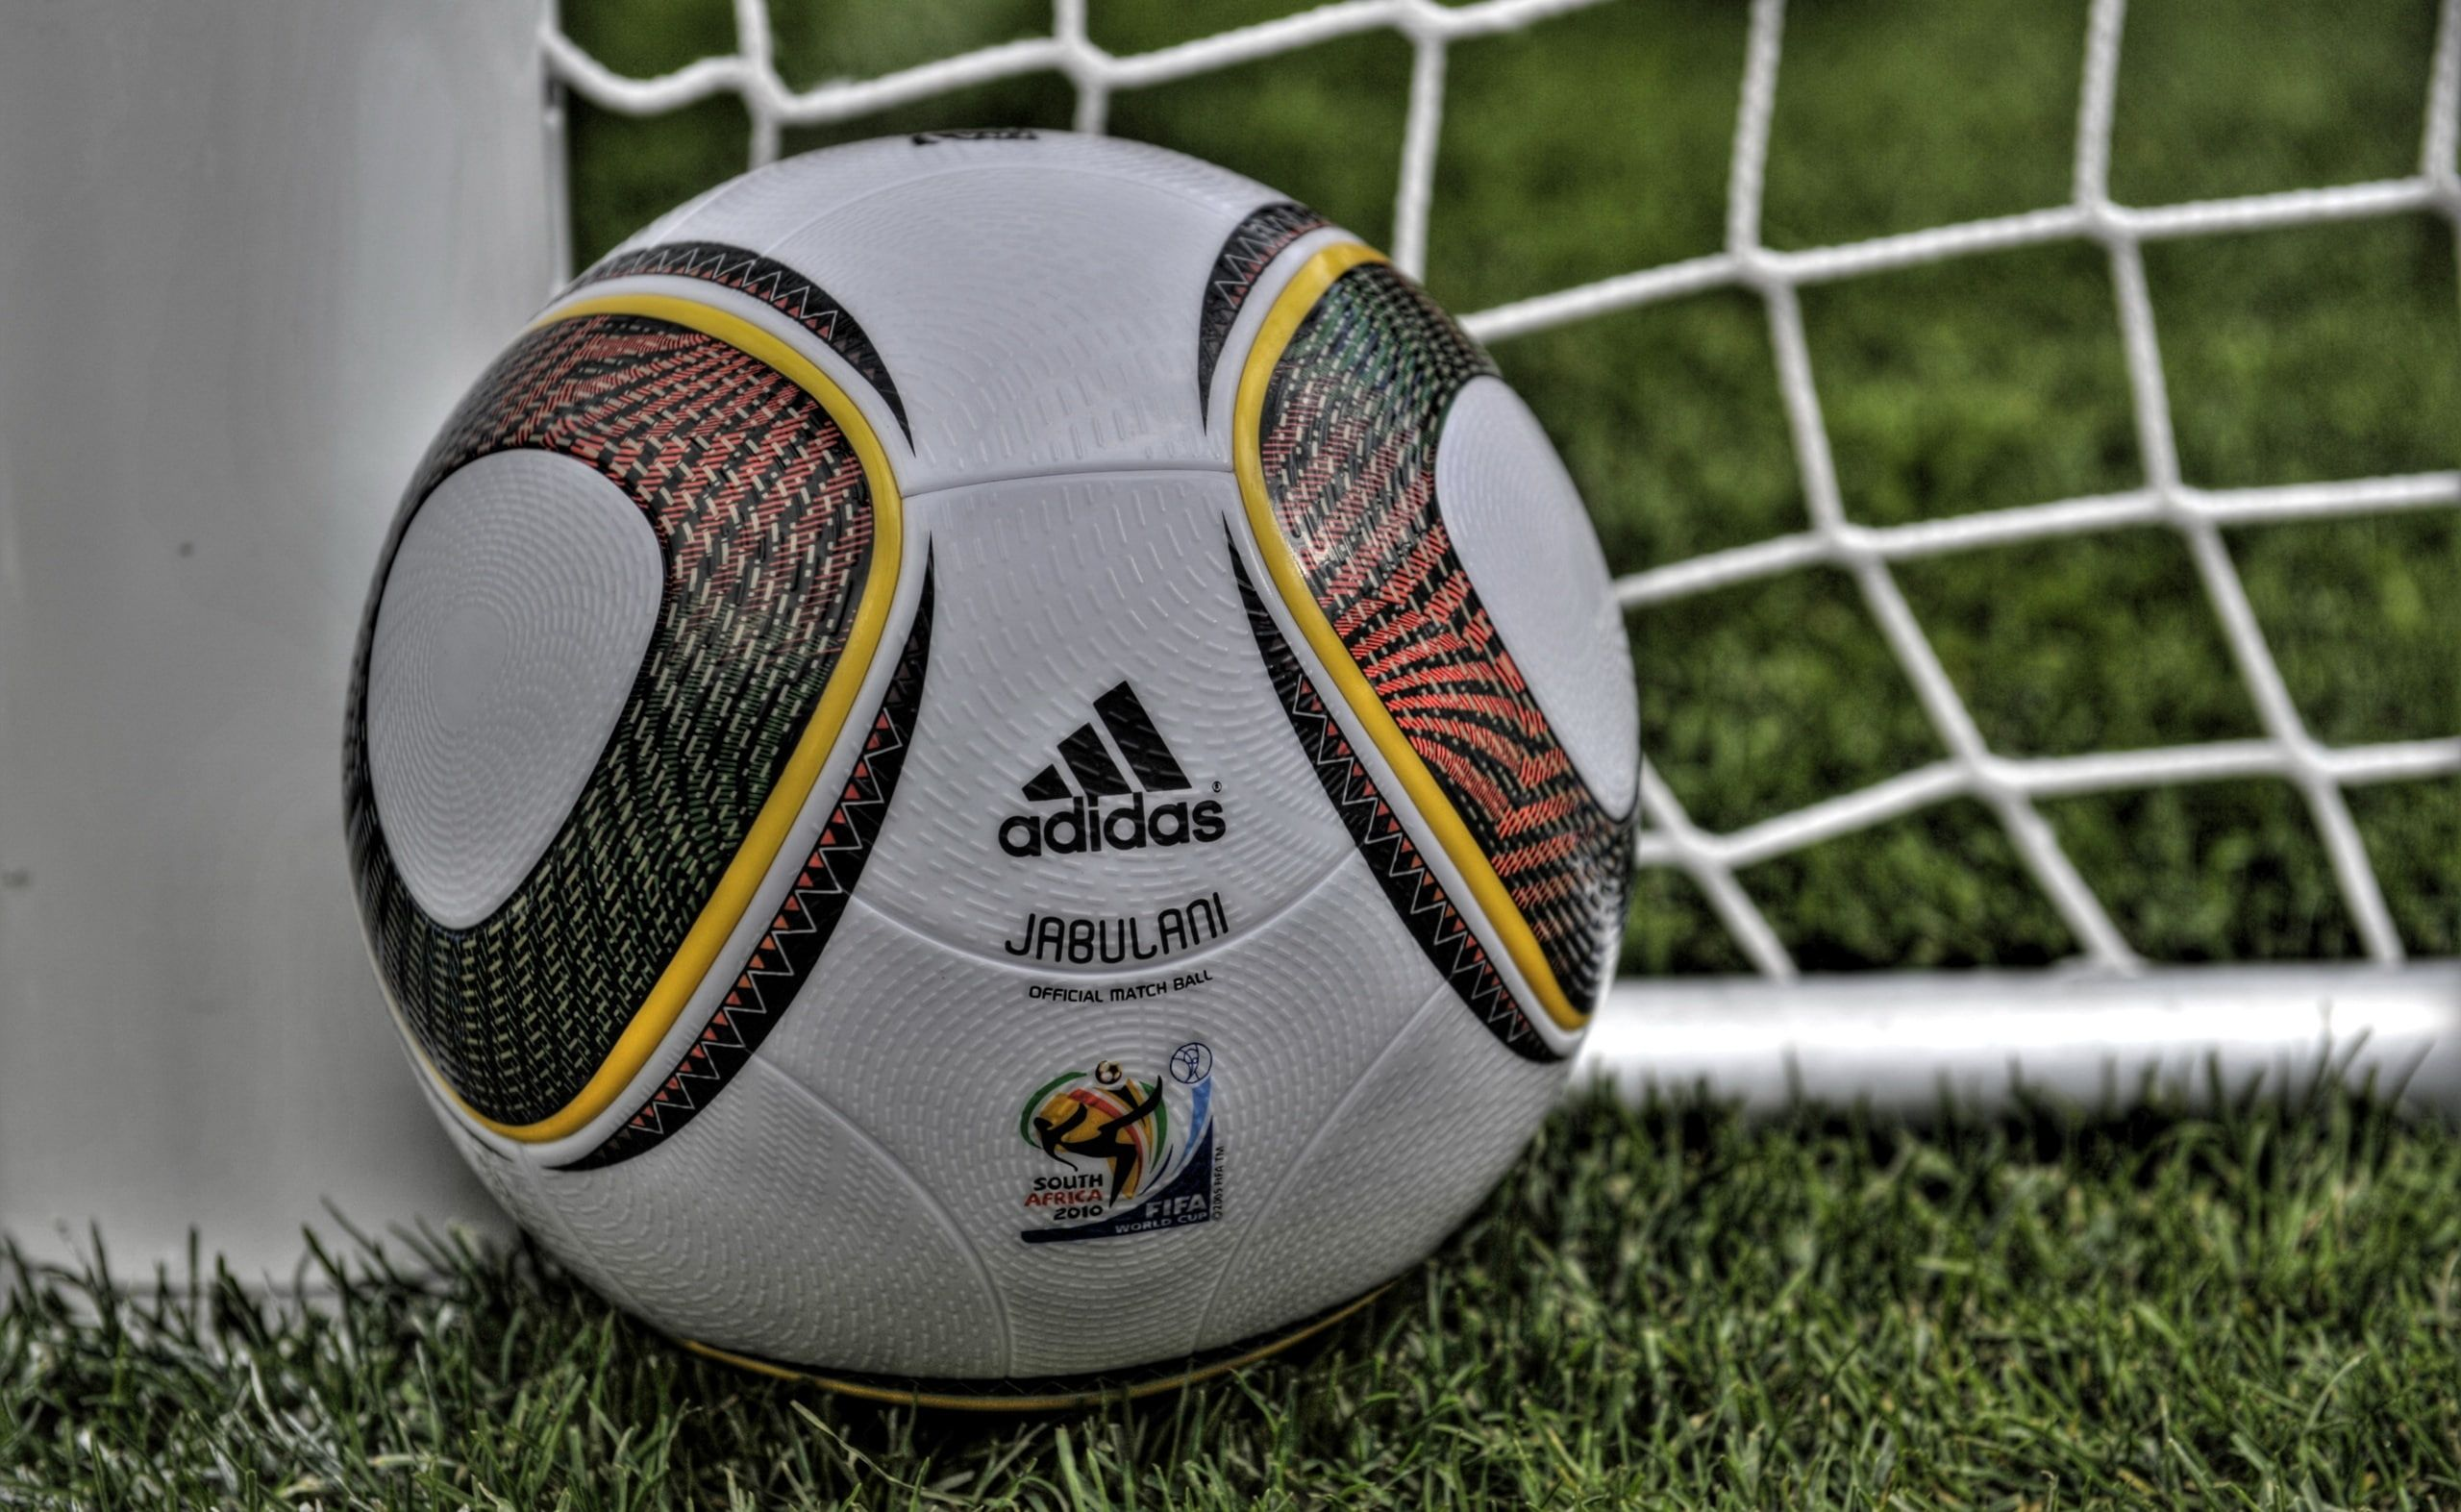 Fifa World Cup South Africa 2010 Ball White Yellow And Black Adidas Soccer Ball Sports Football World Africa South Fi In 2020 Soccer Ball Soccer Adidas Soccer